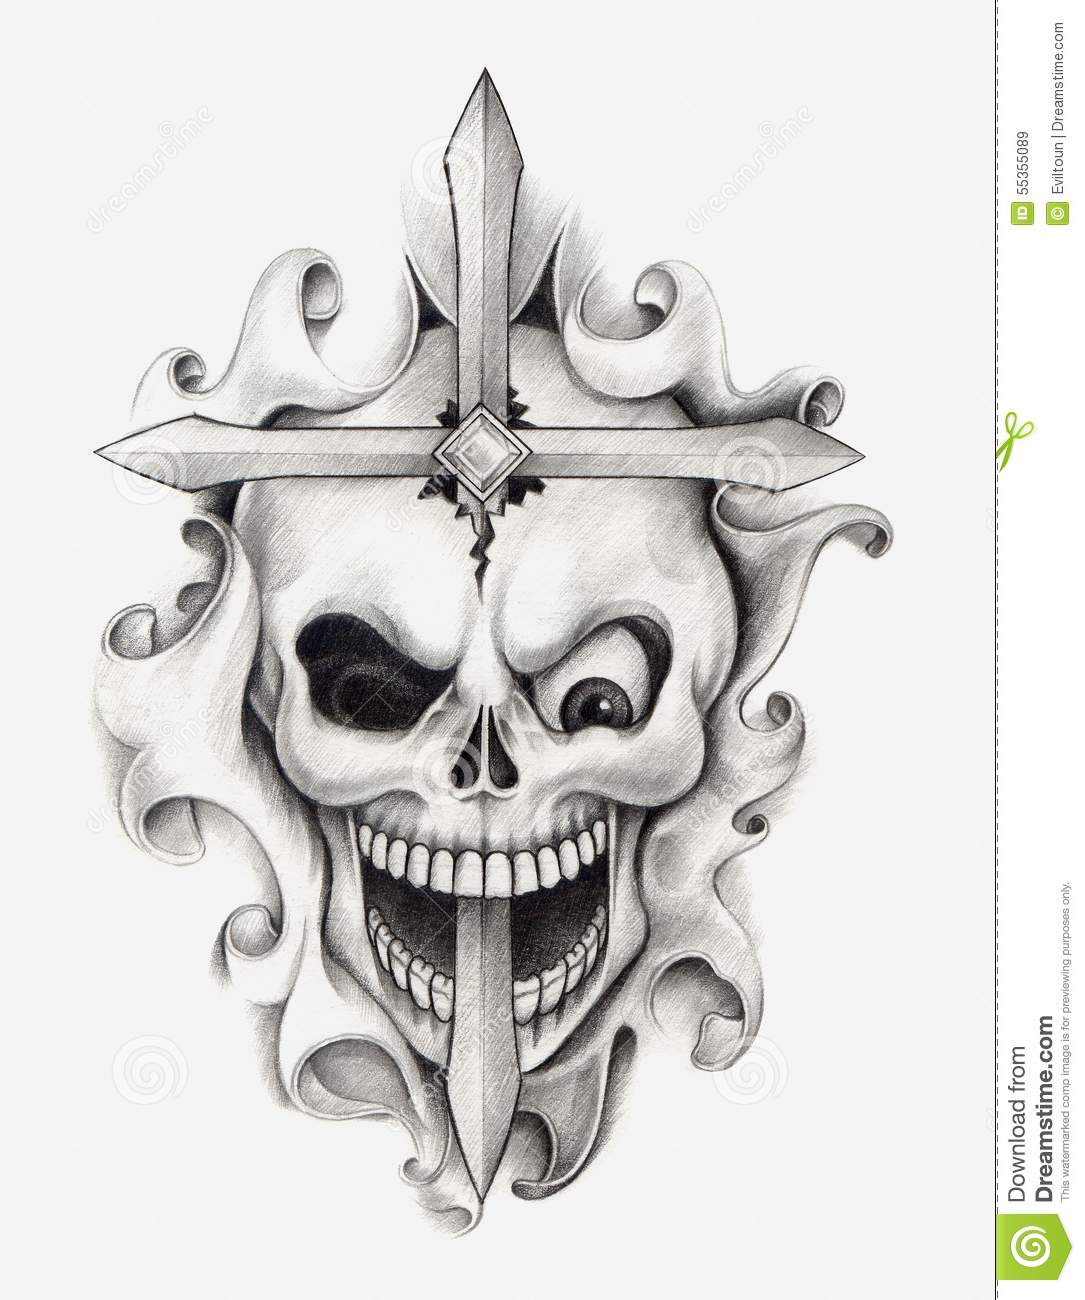 Girls And Lowrider Wallpaper Pic Skull Cross Art Tattoo Stock Illustration Image 55355089